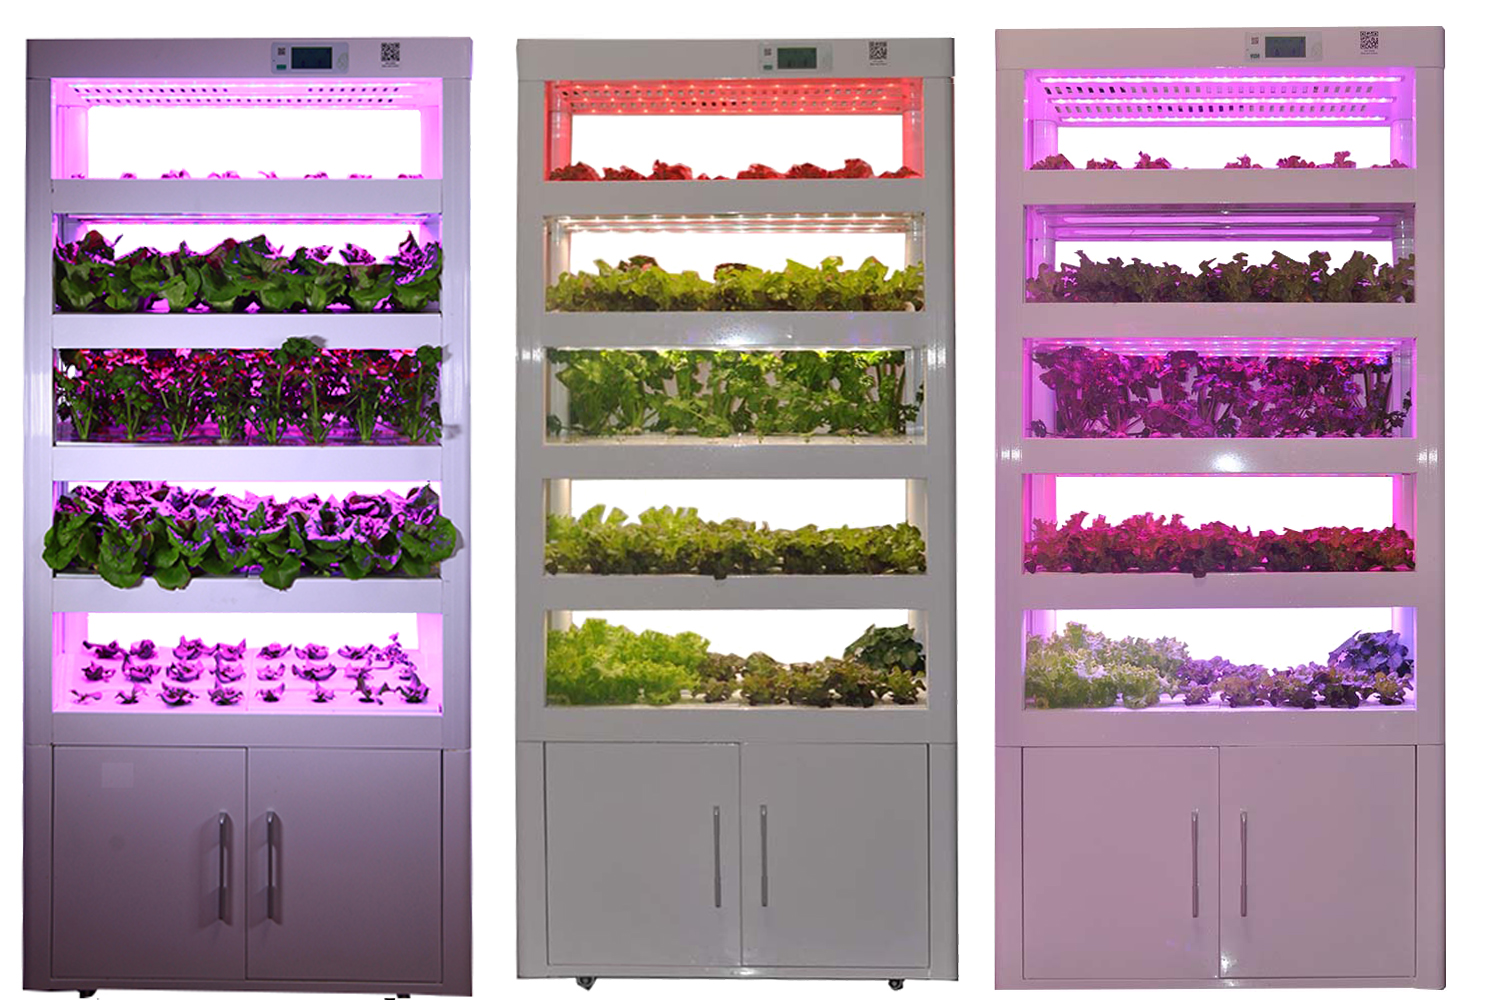 Hydroponic-Cultivator-for-Planting